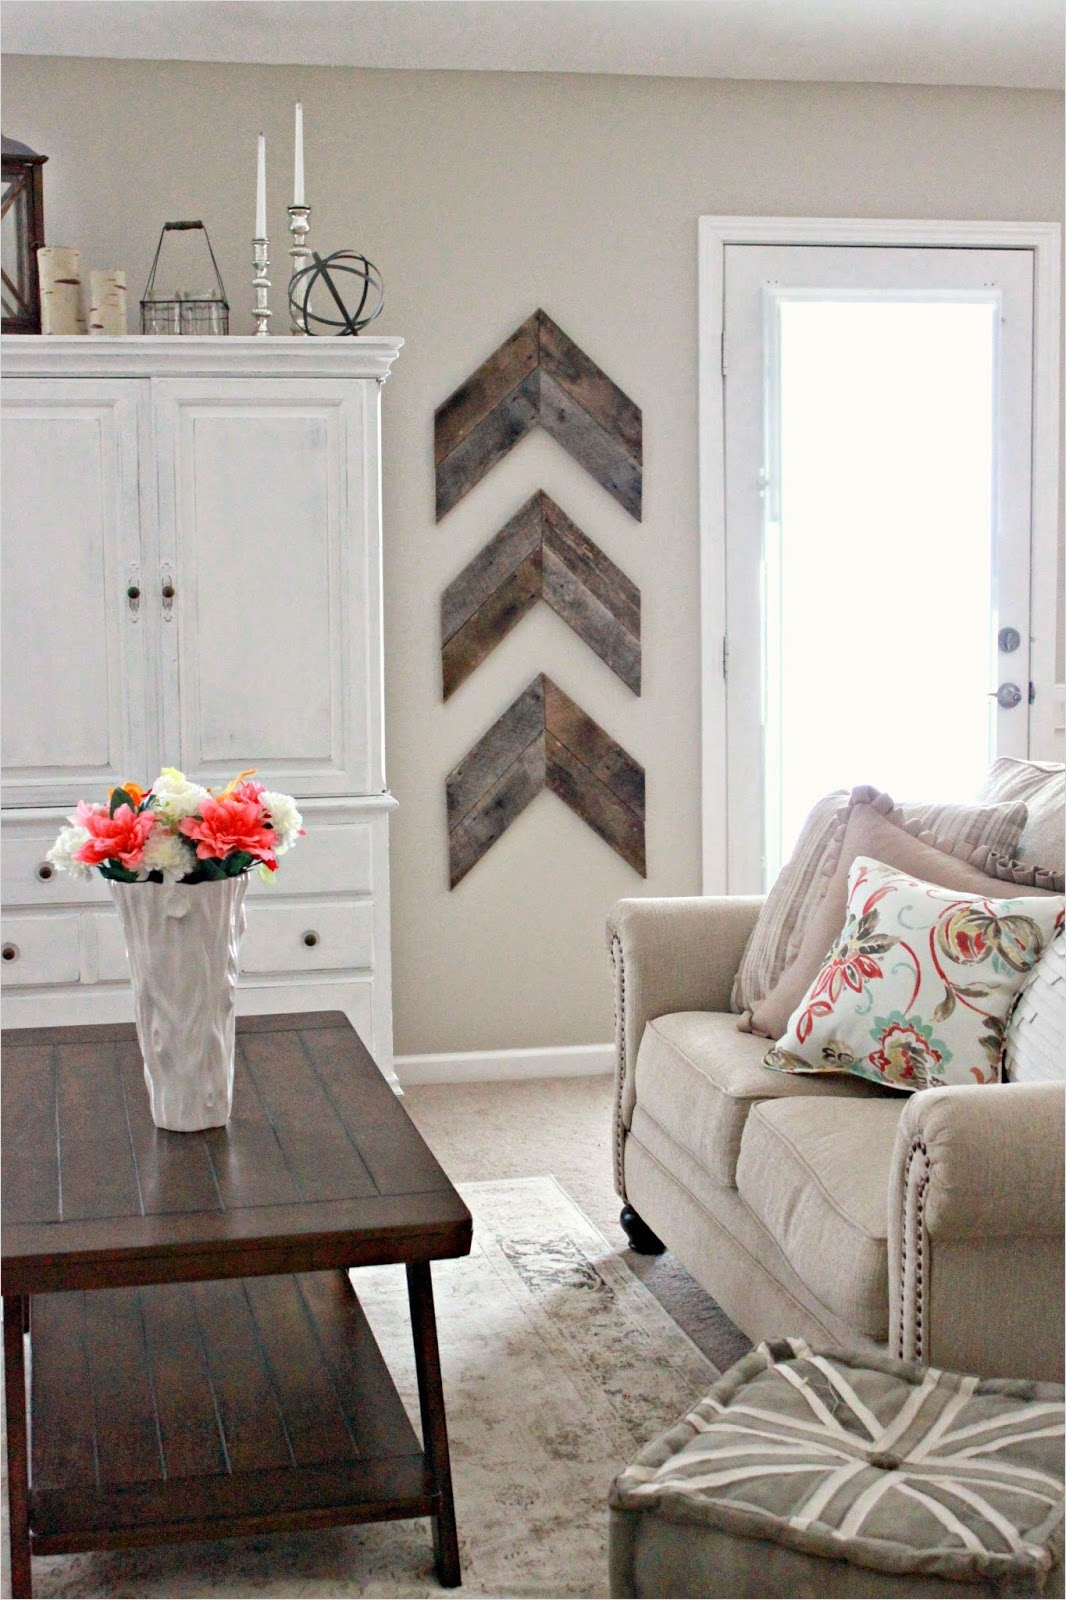 40 Creative Ideas Wall Decor for Living Room 73 15 Striking Ways to Decorate with Arrows 6